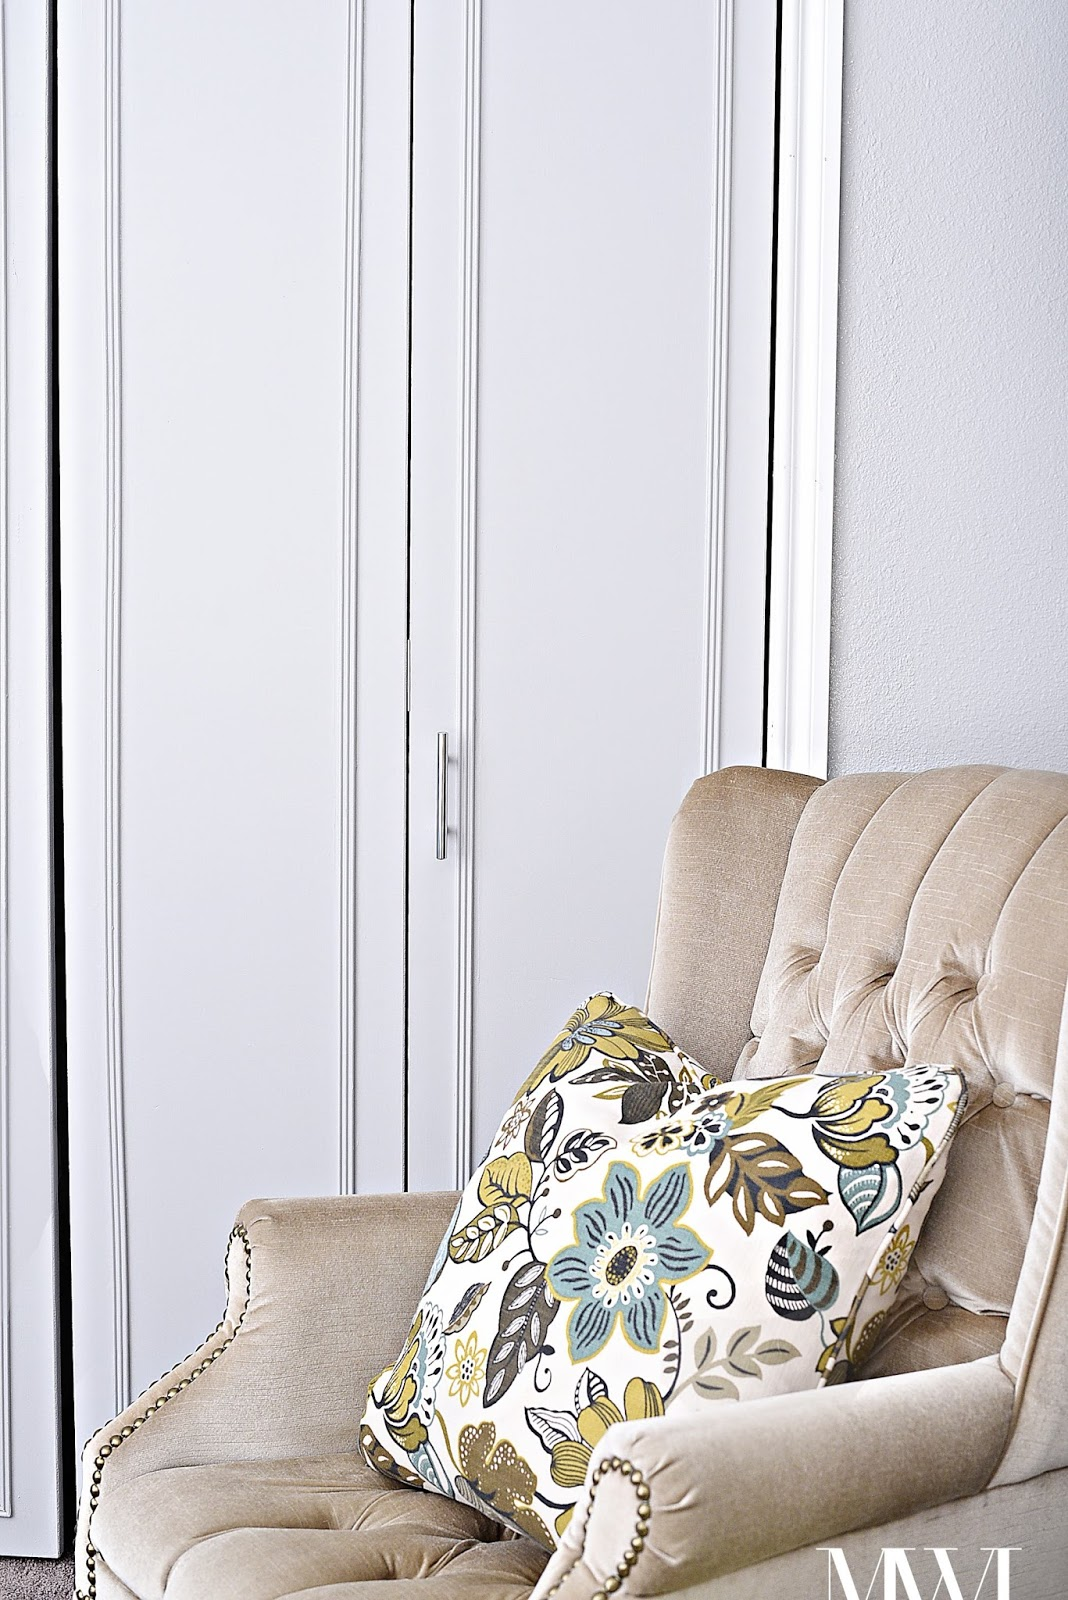 A step-by-step tutorial on how to update outdated, dark wood bi-fold closet doors! The end result is so pretty and timeless.